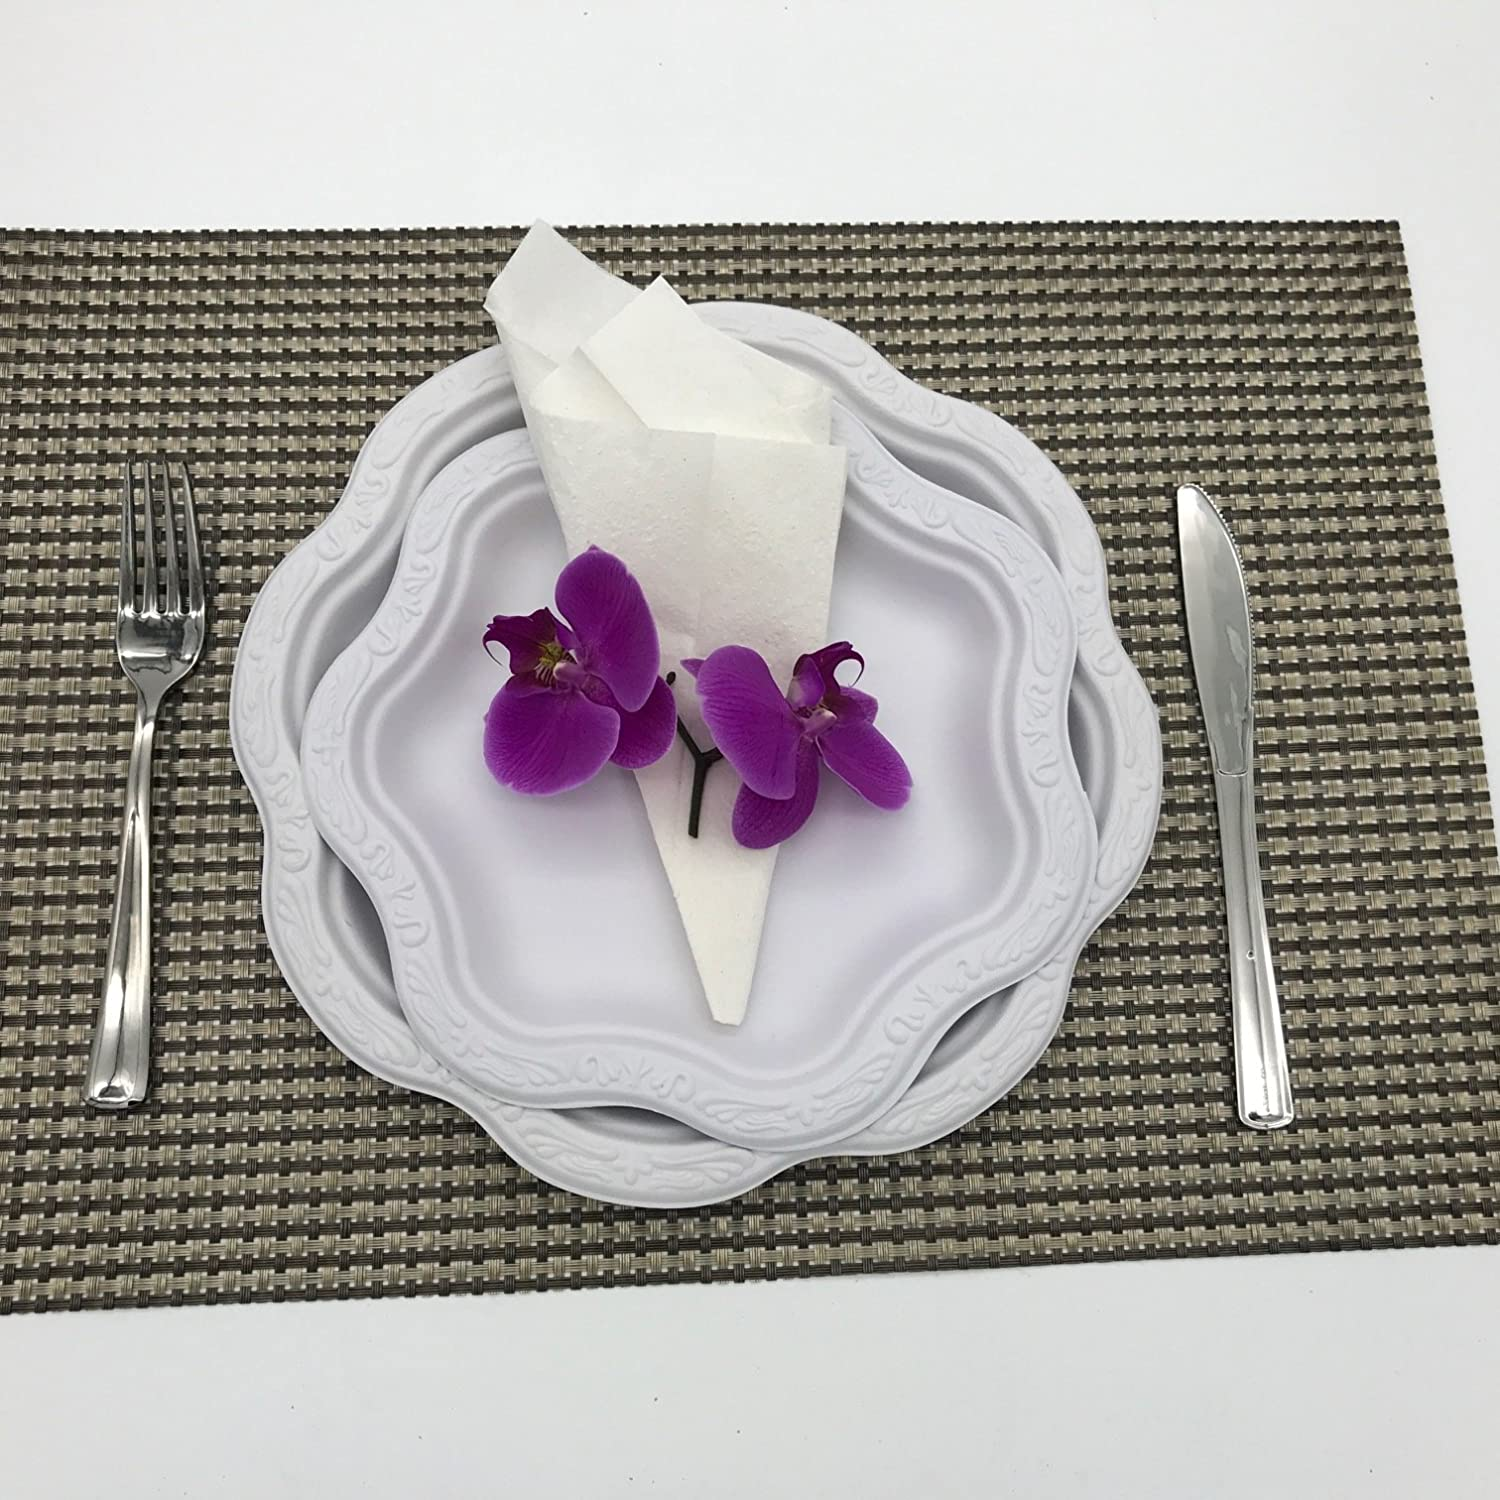 """[50 COUNT] 9"""" inch Disposable Floral Medium Premium White Plates - Acanthus Collection Natural Sugarcane Bamboo Fibers Bagasse 100% Byproduct Eco Friendly Environmental Plastic Paper Plate Alternative"""